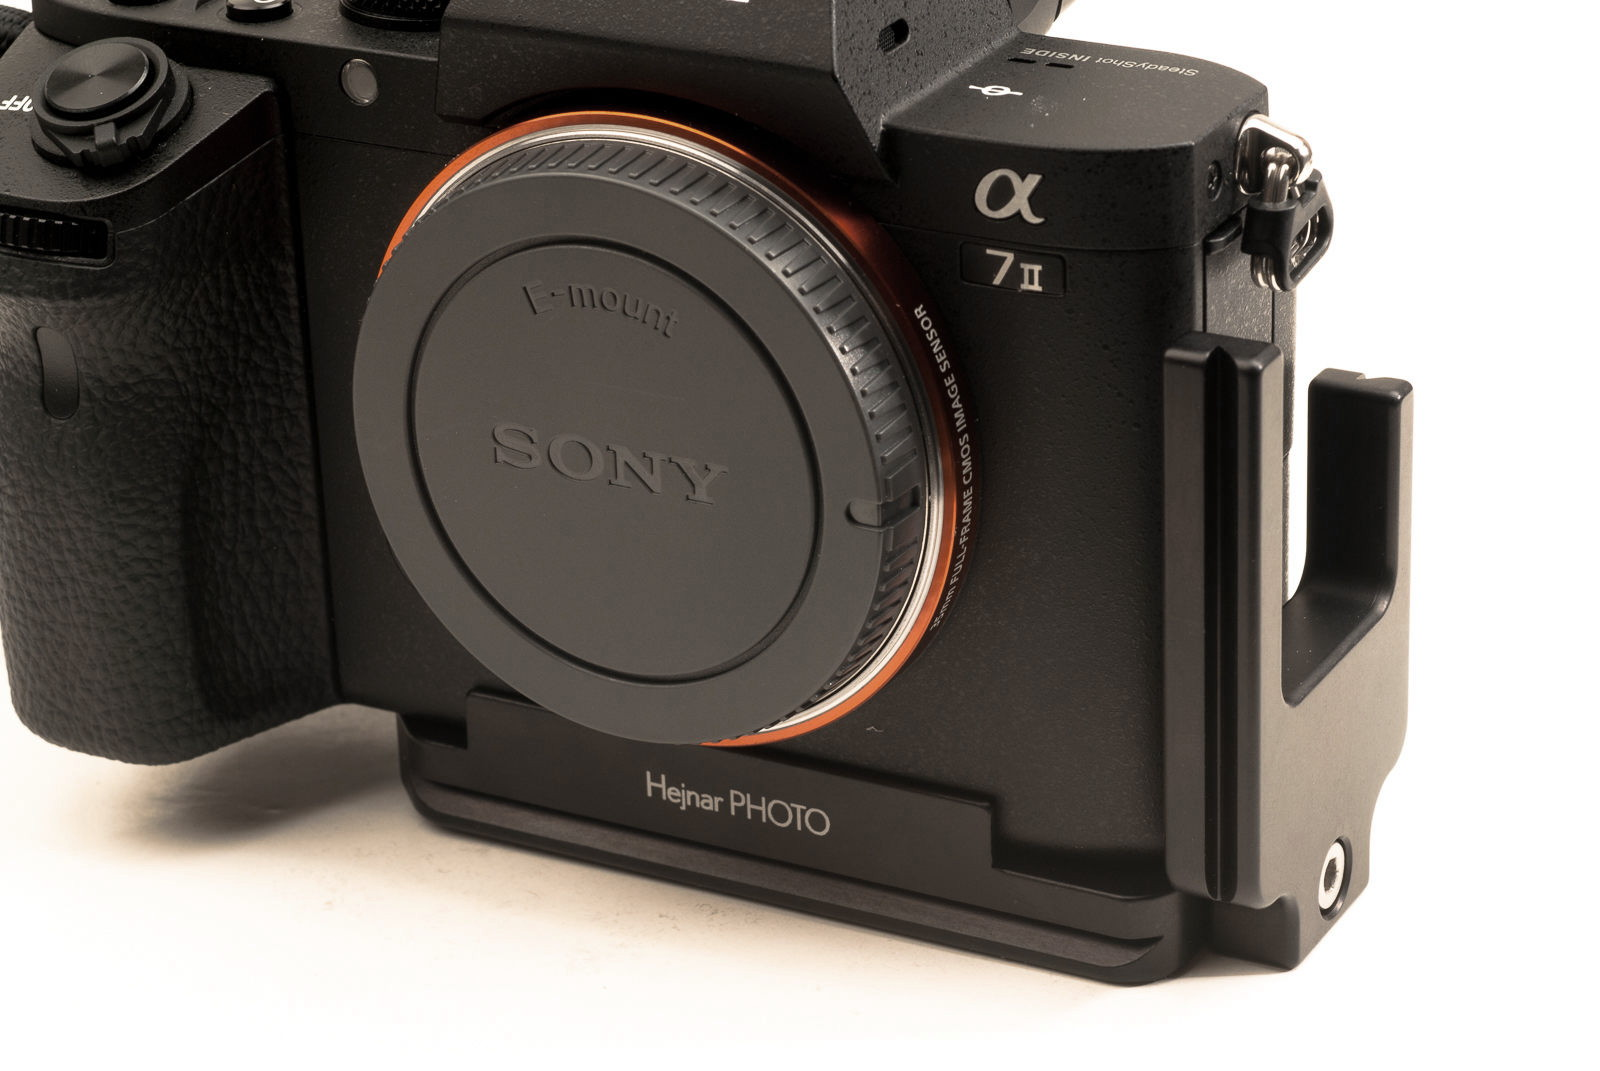 Hejnar PHOTO S-A-7II L Bracket on SONY a7II - front ridge detail